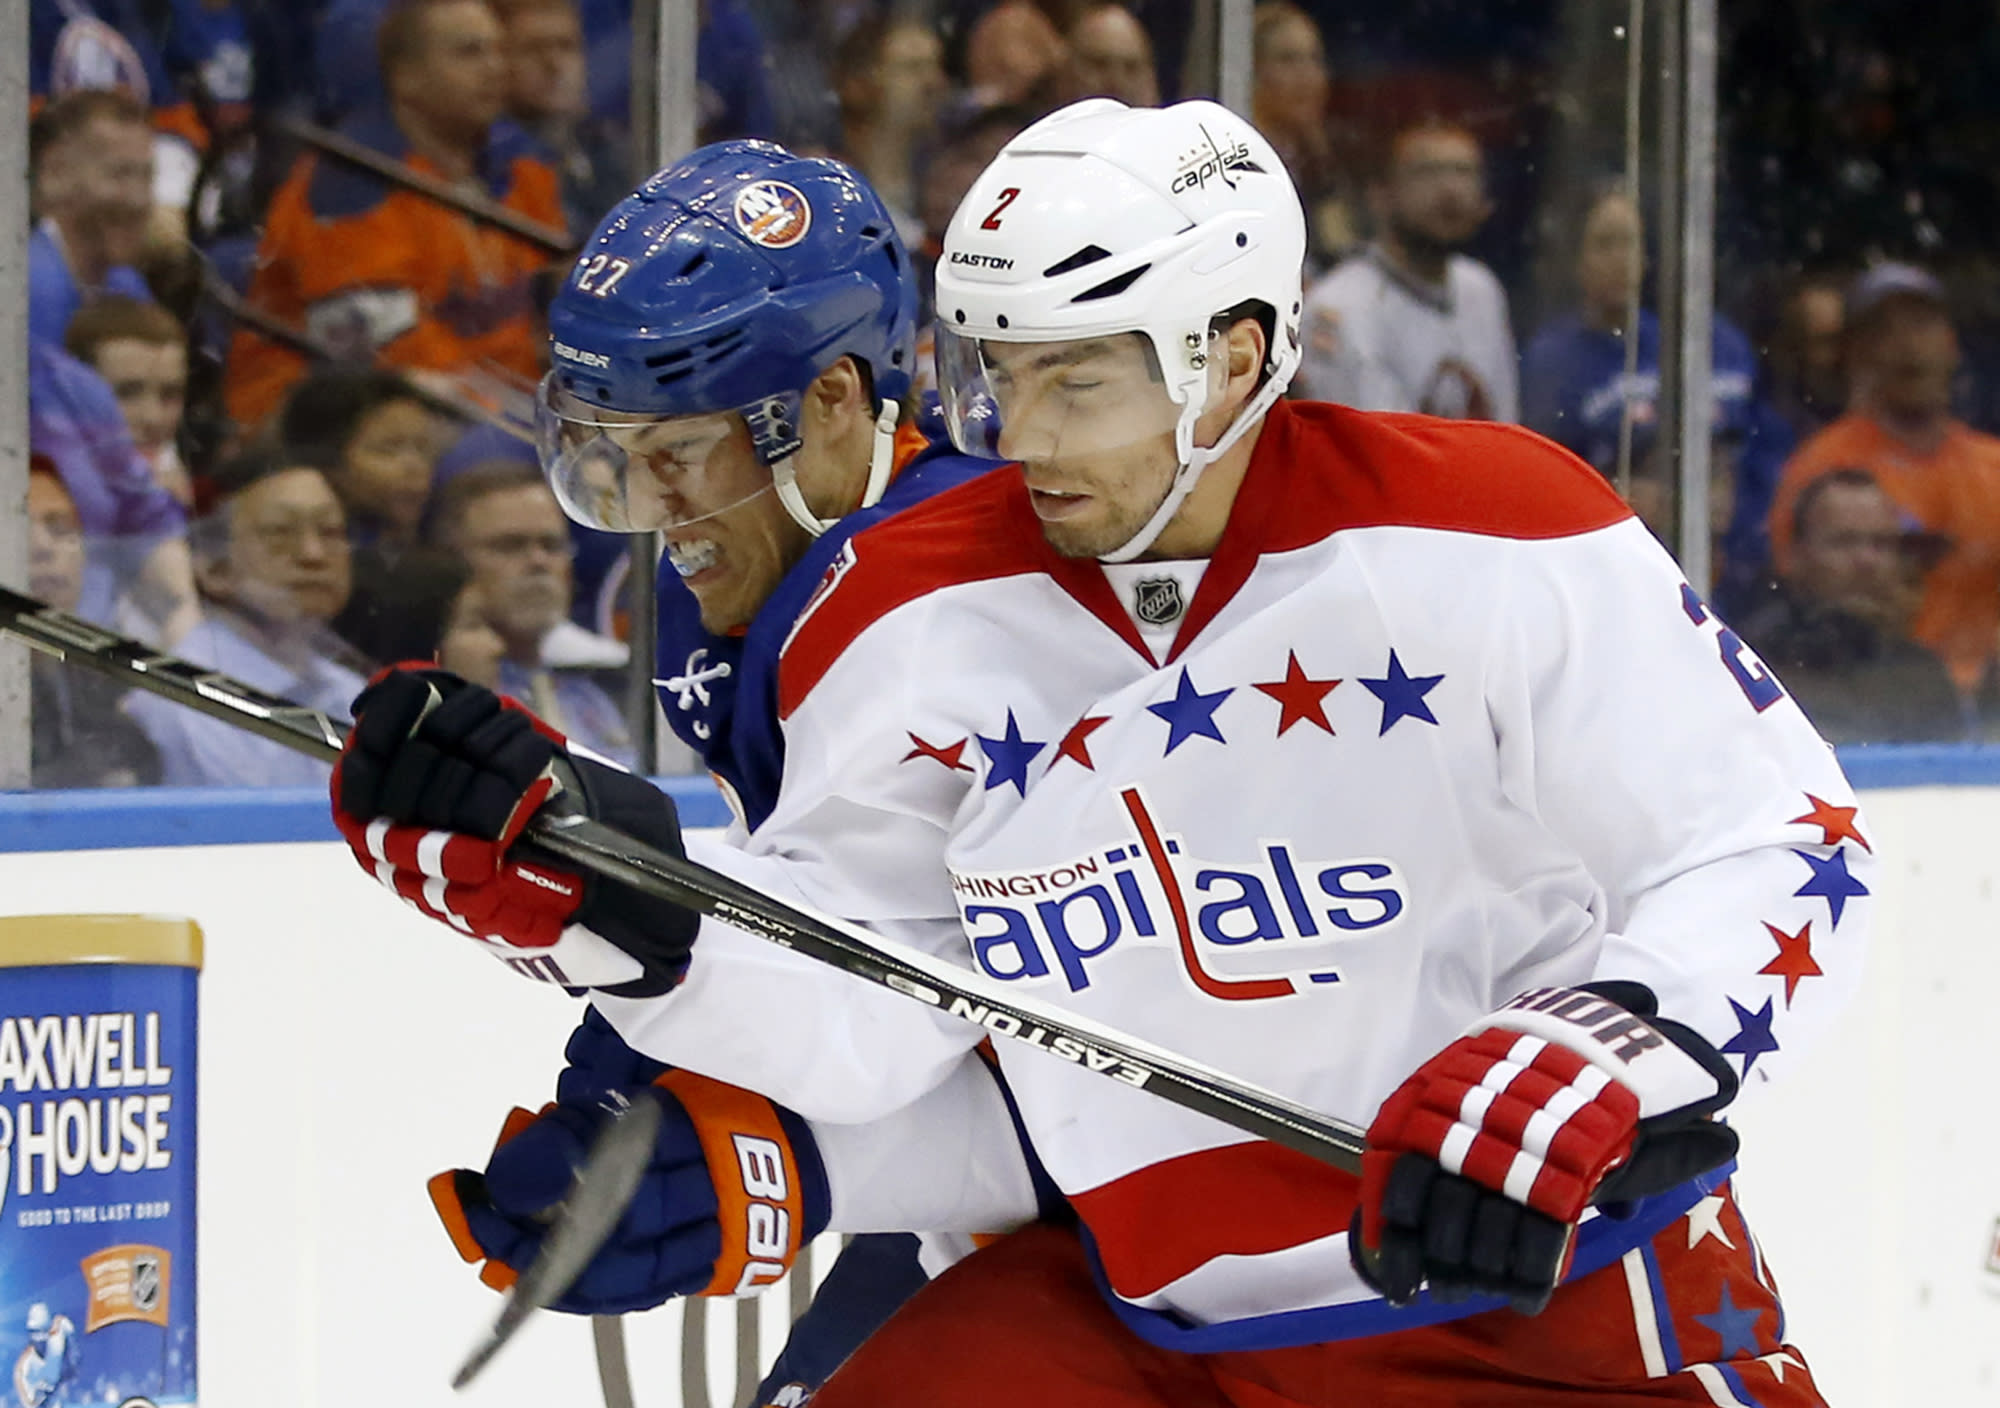 NHL teams must adapt to 'novelty' of 3-on-3 OT this season